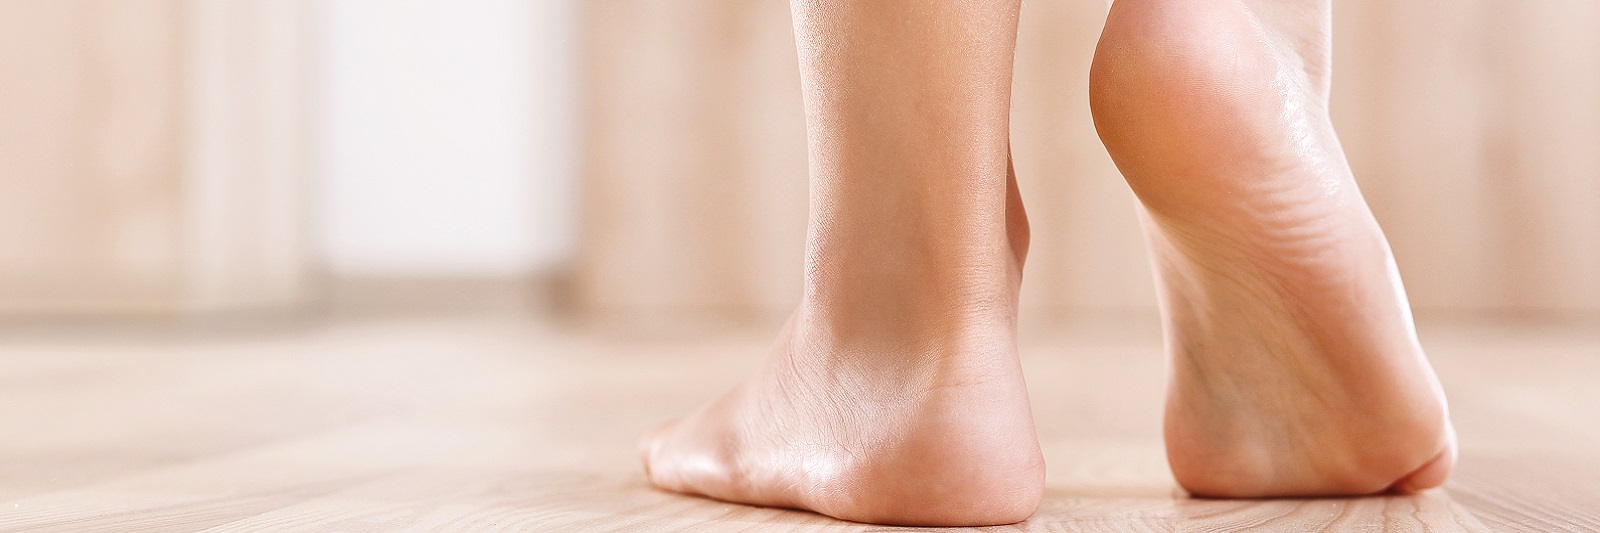 Elgin Podiatry